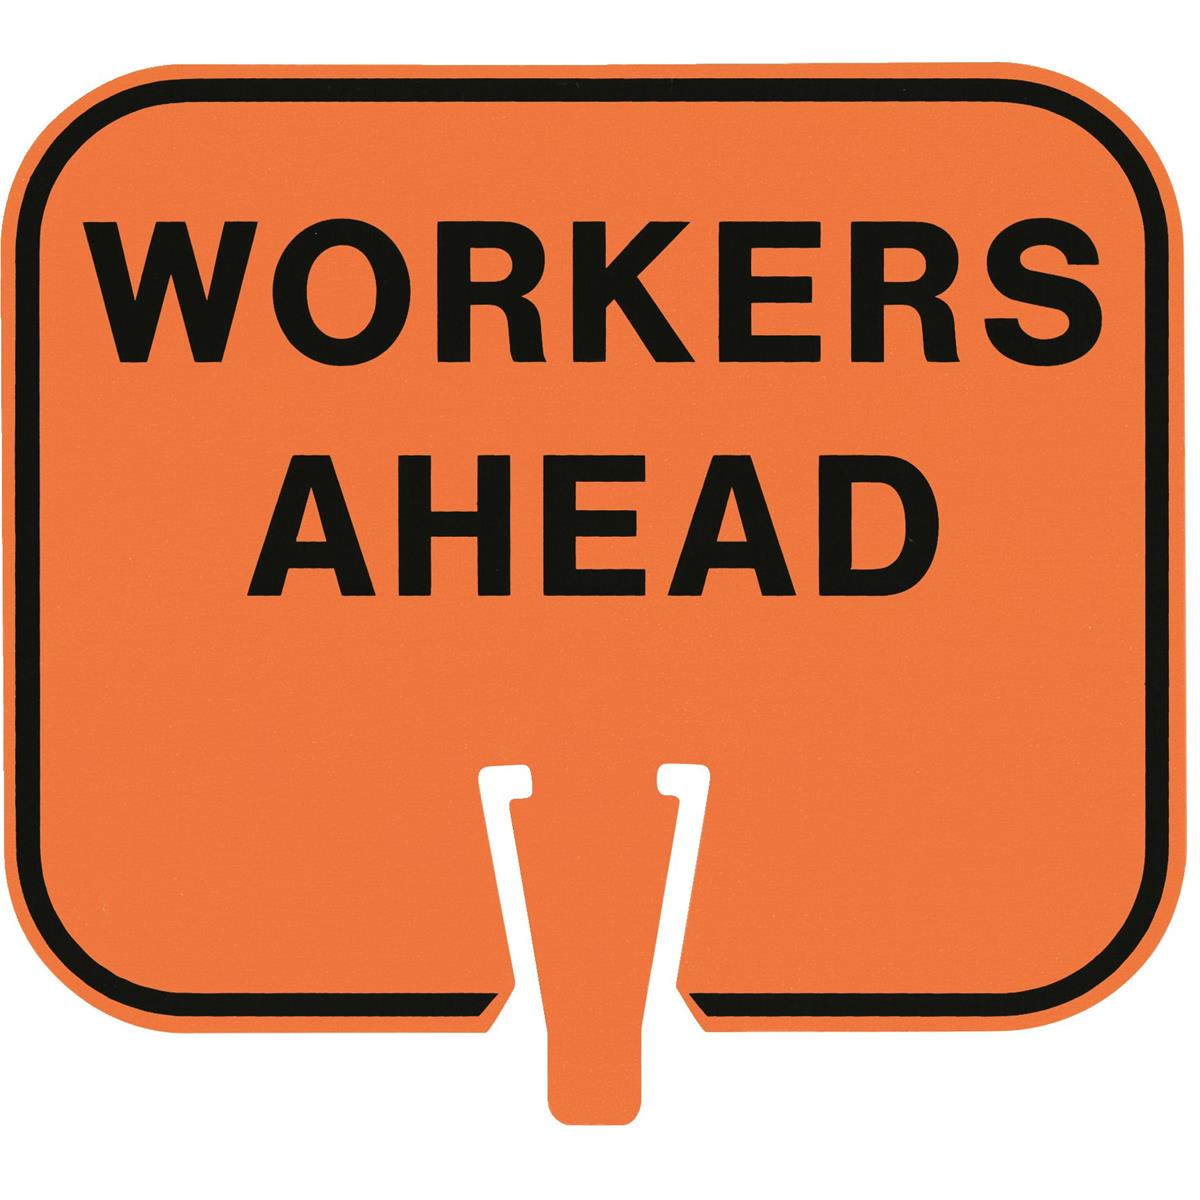 """Workers Ahead"""" Weather."""